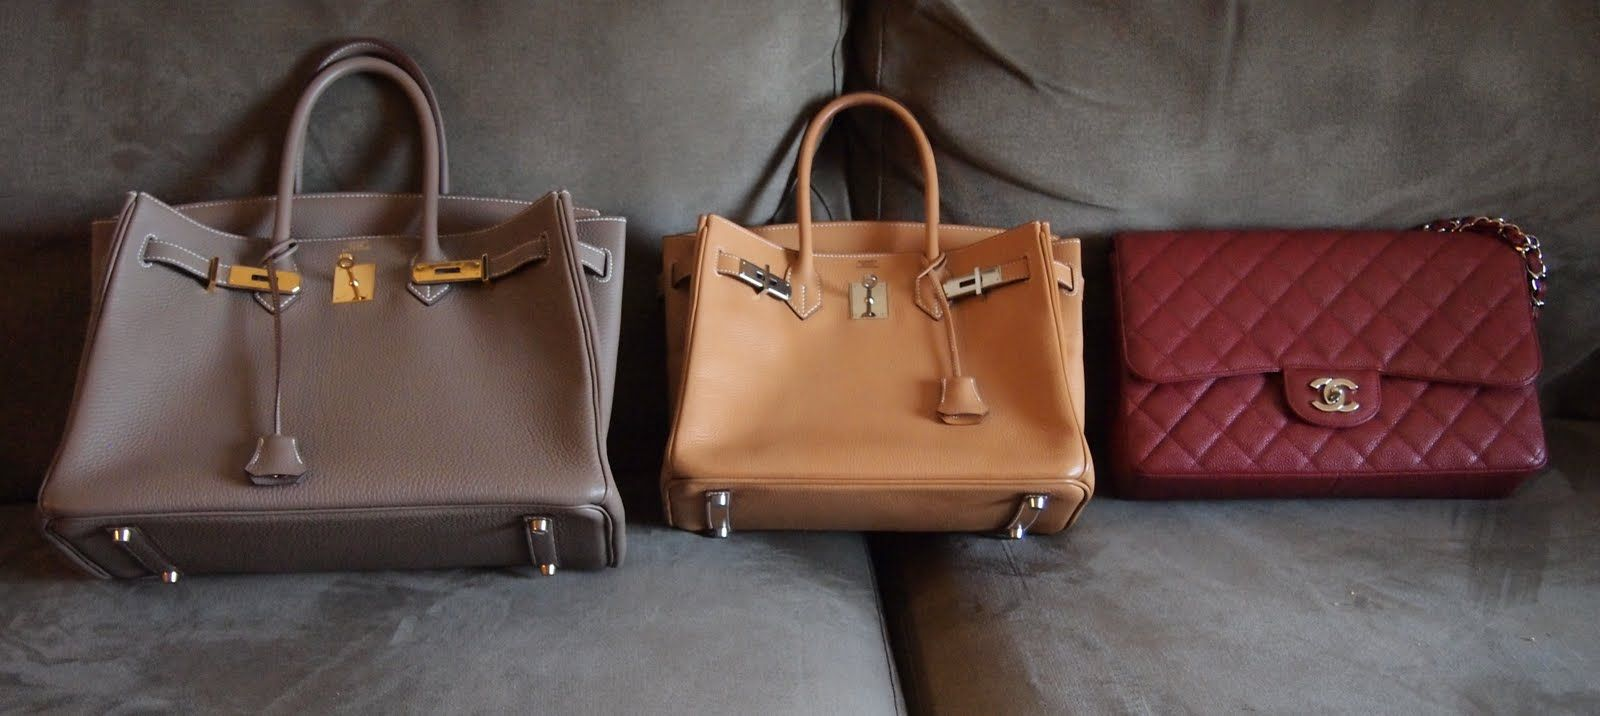 8199d29d13a9 Hermes Birkin 30cm and 35cm vs. Chanel Jumbo